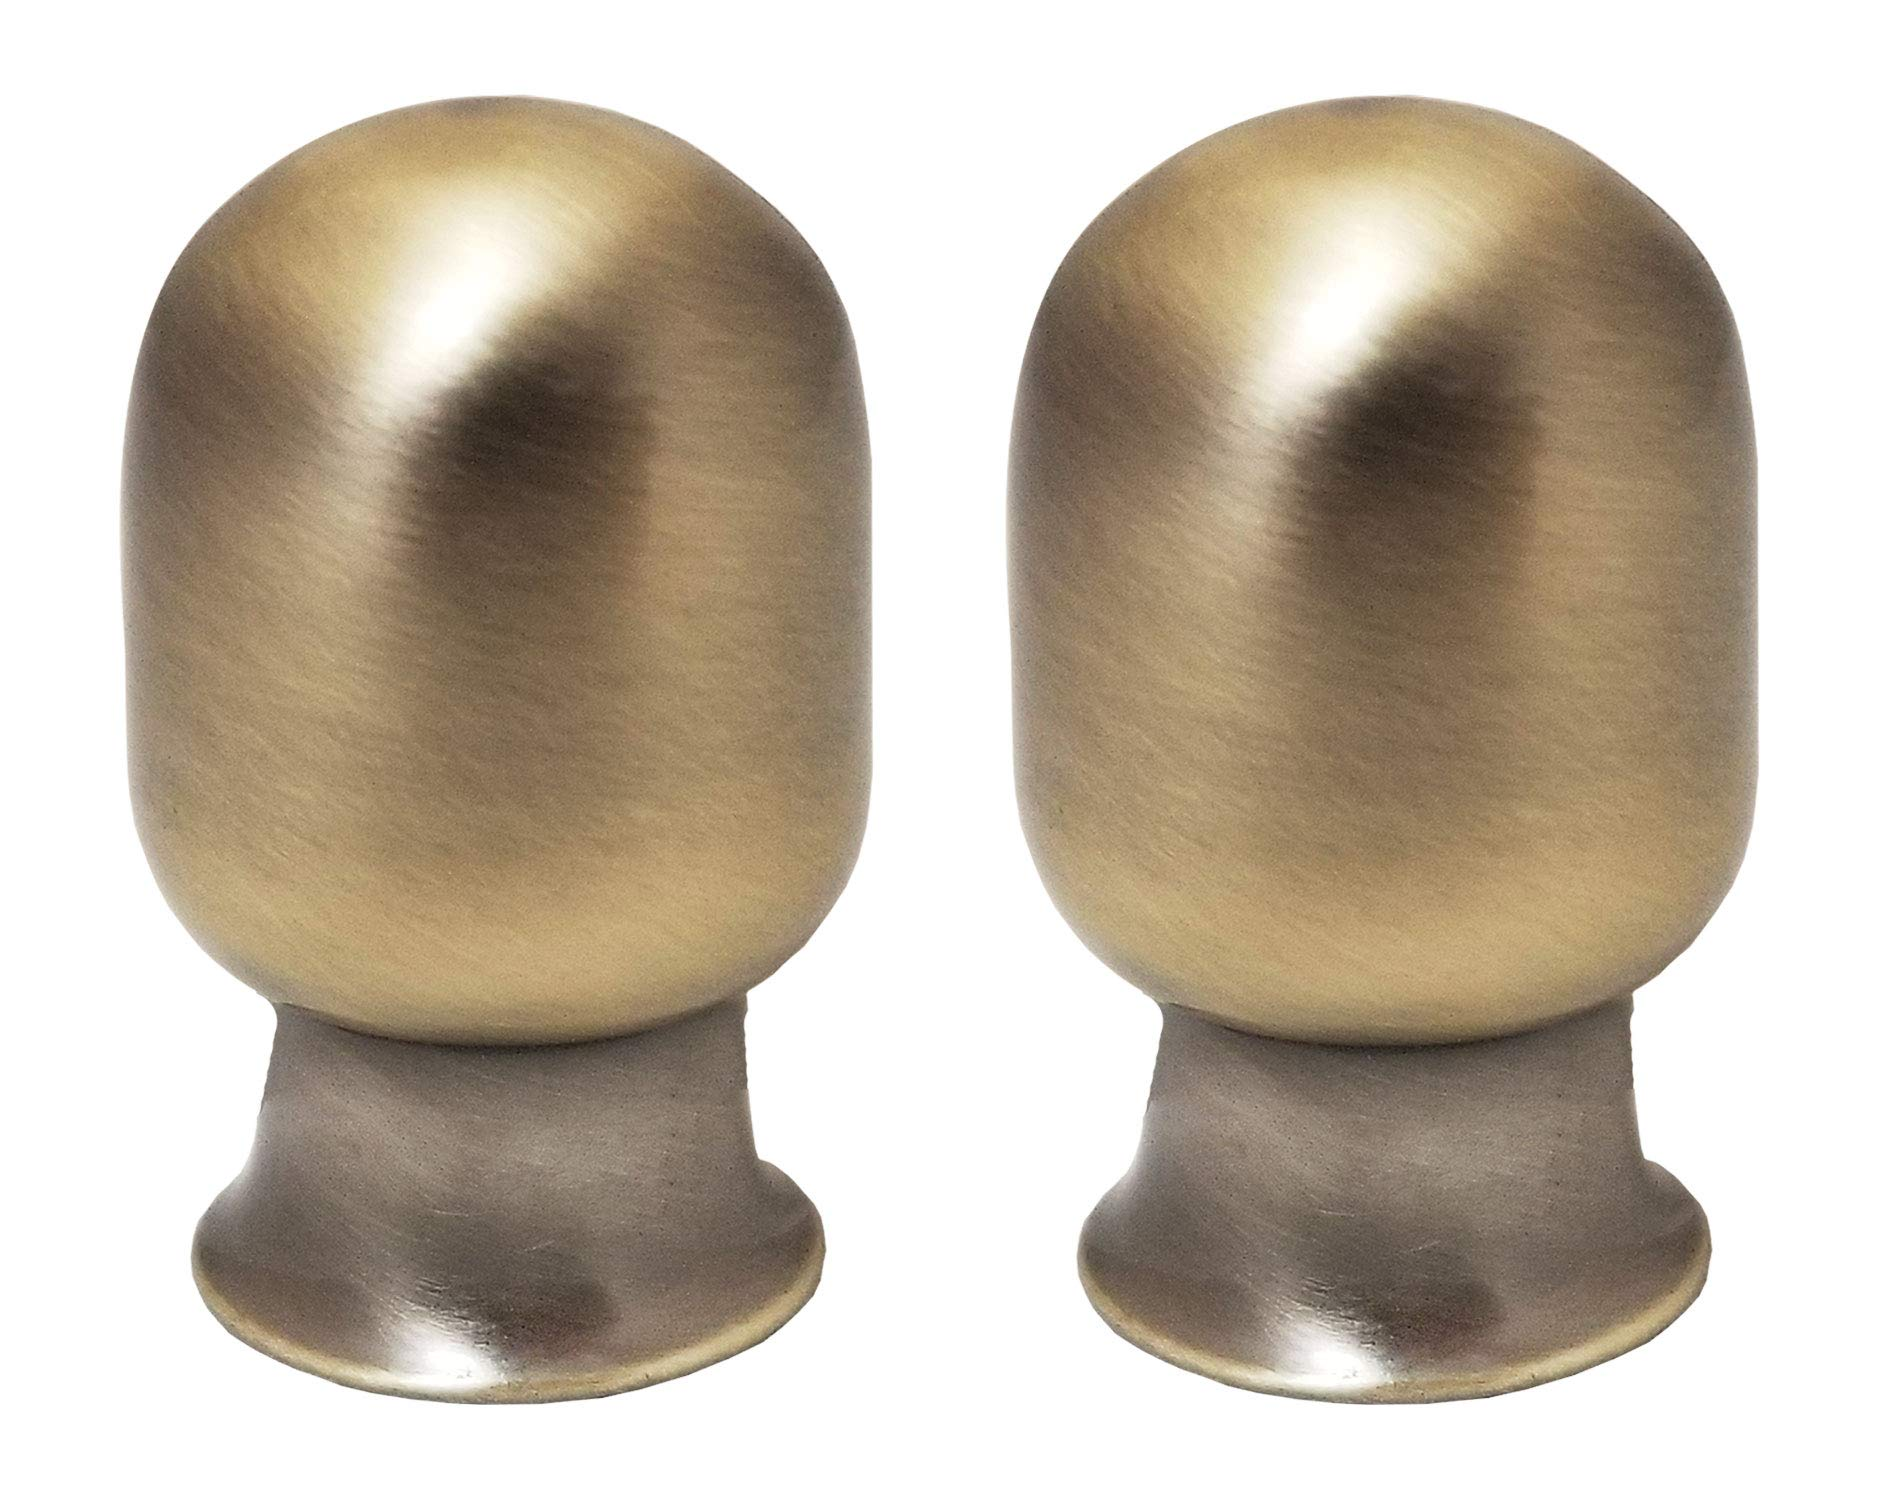 Royal Designs F-7002AB-2 Top Rounded Cylindar Finial, Antique Brass, Set of 2